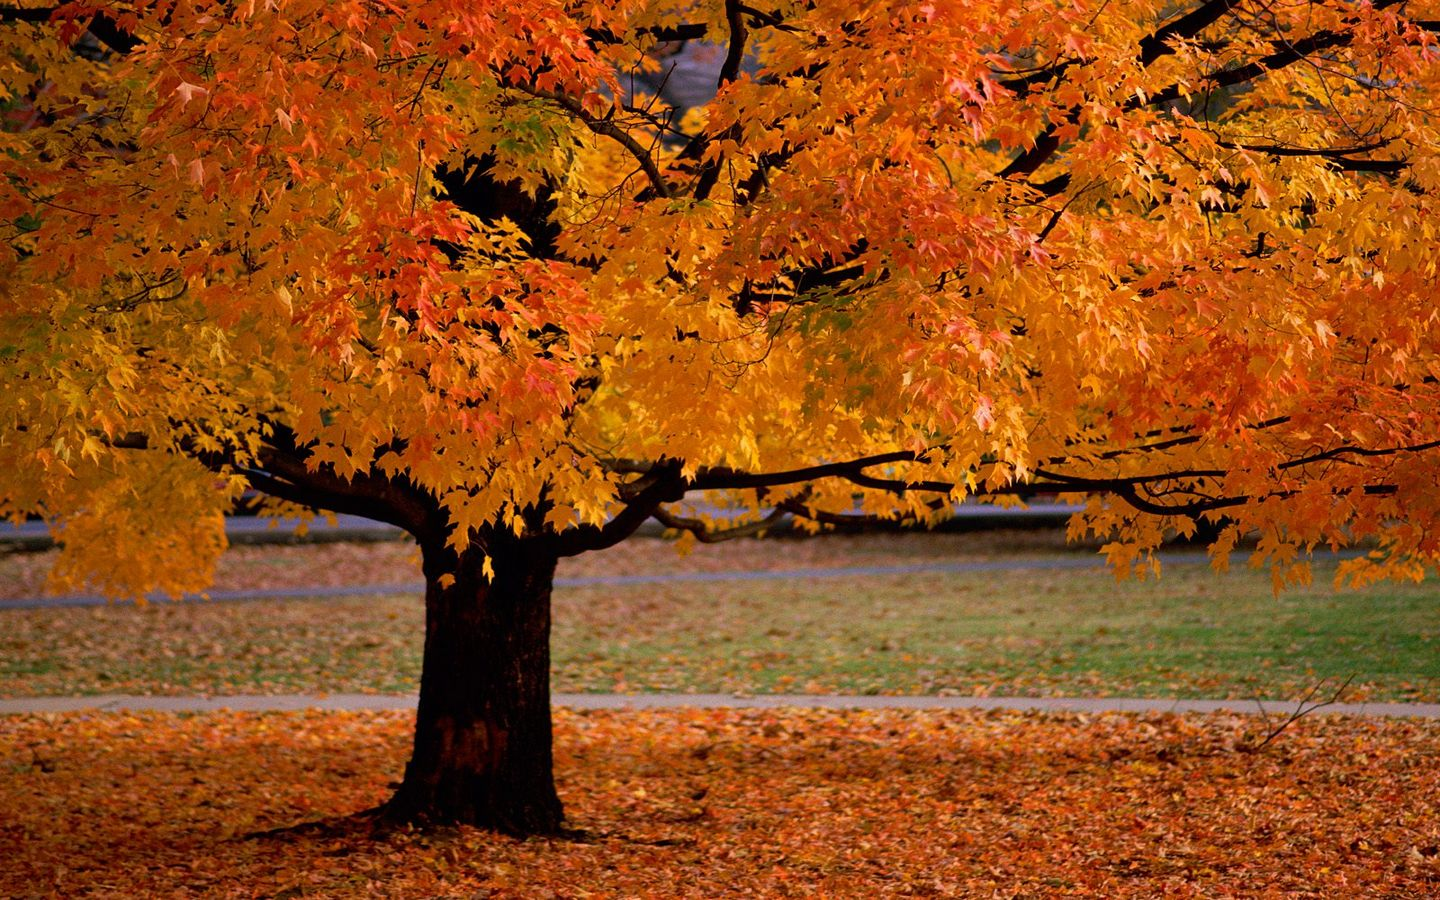 ... fall colors wallpaper displaying 12 images for fall colors wallpaper